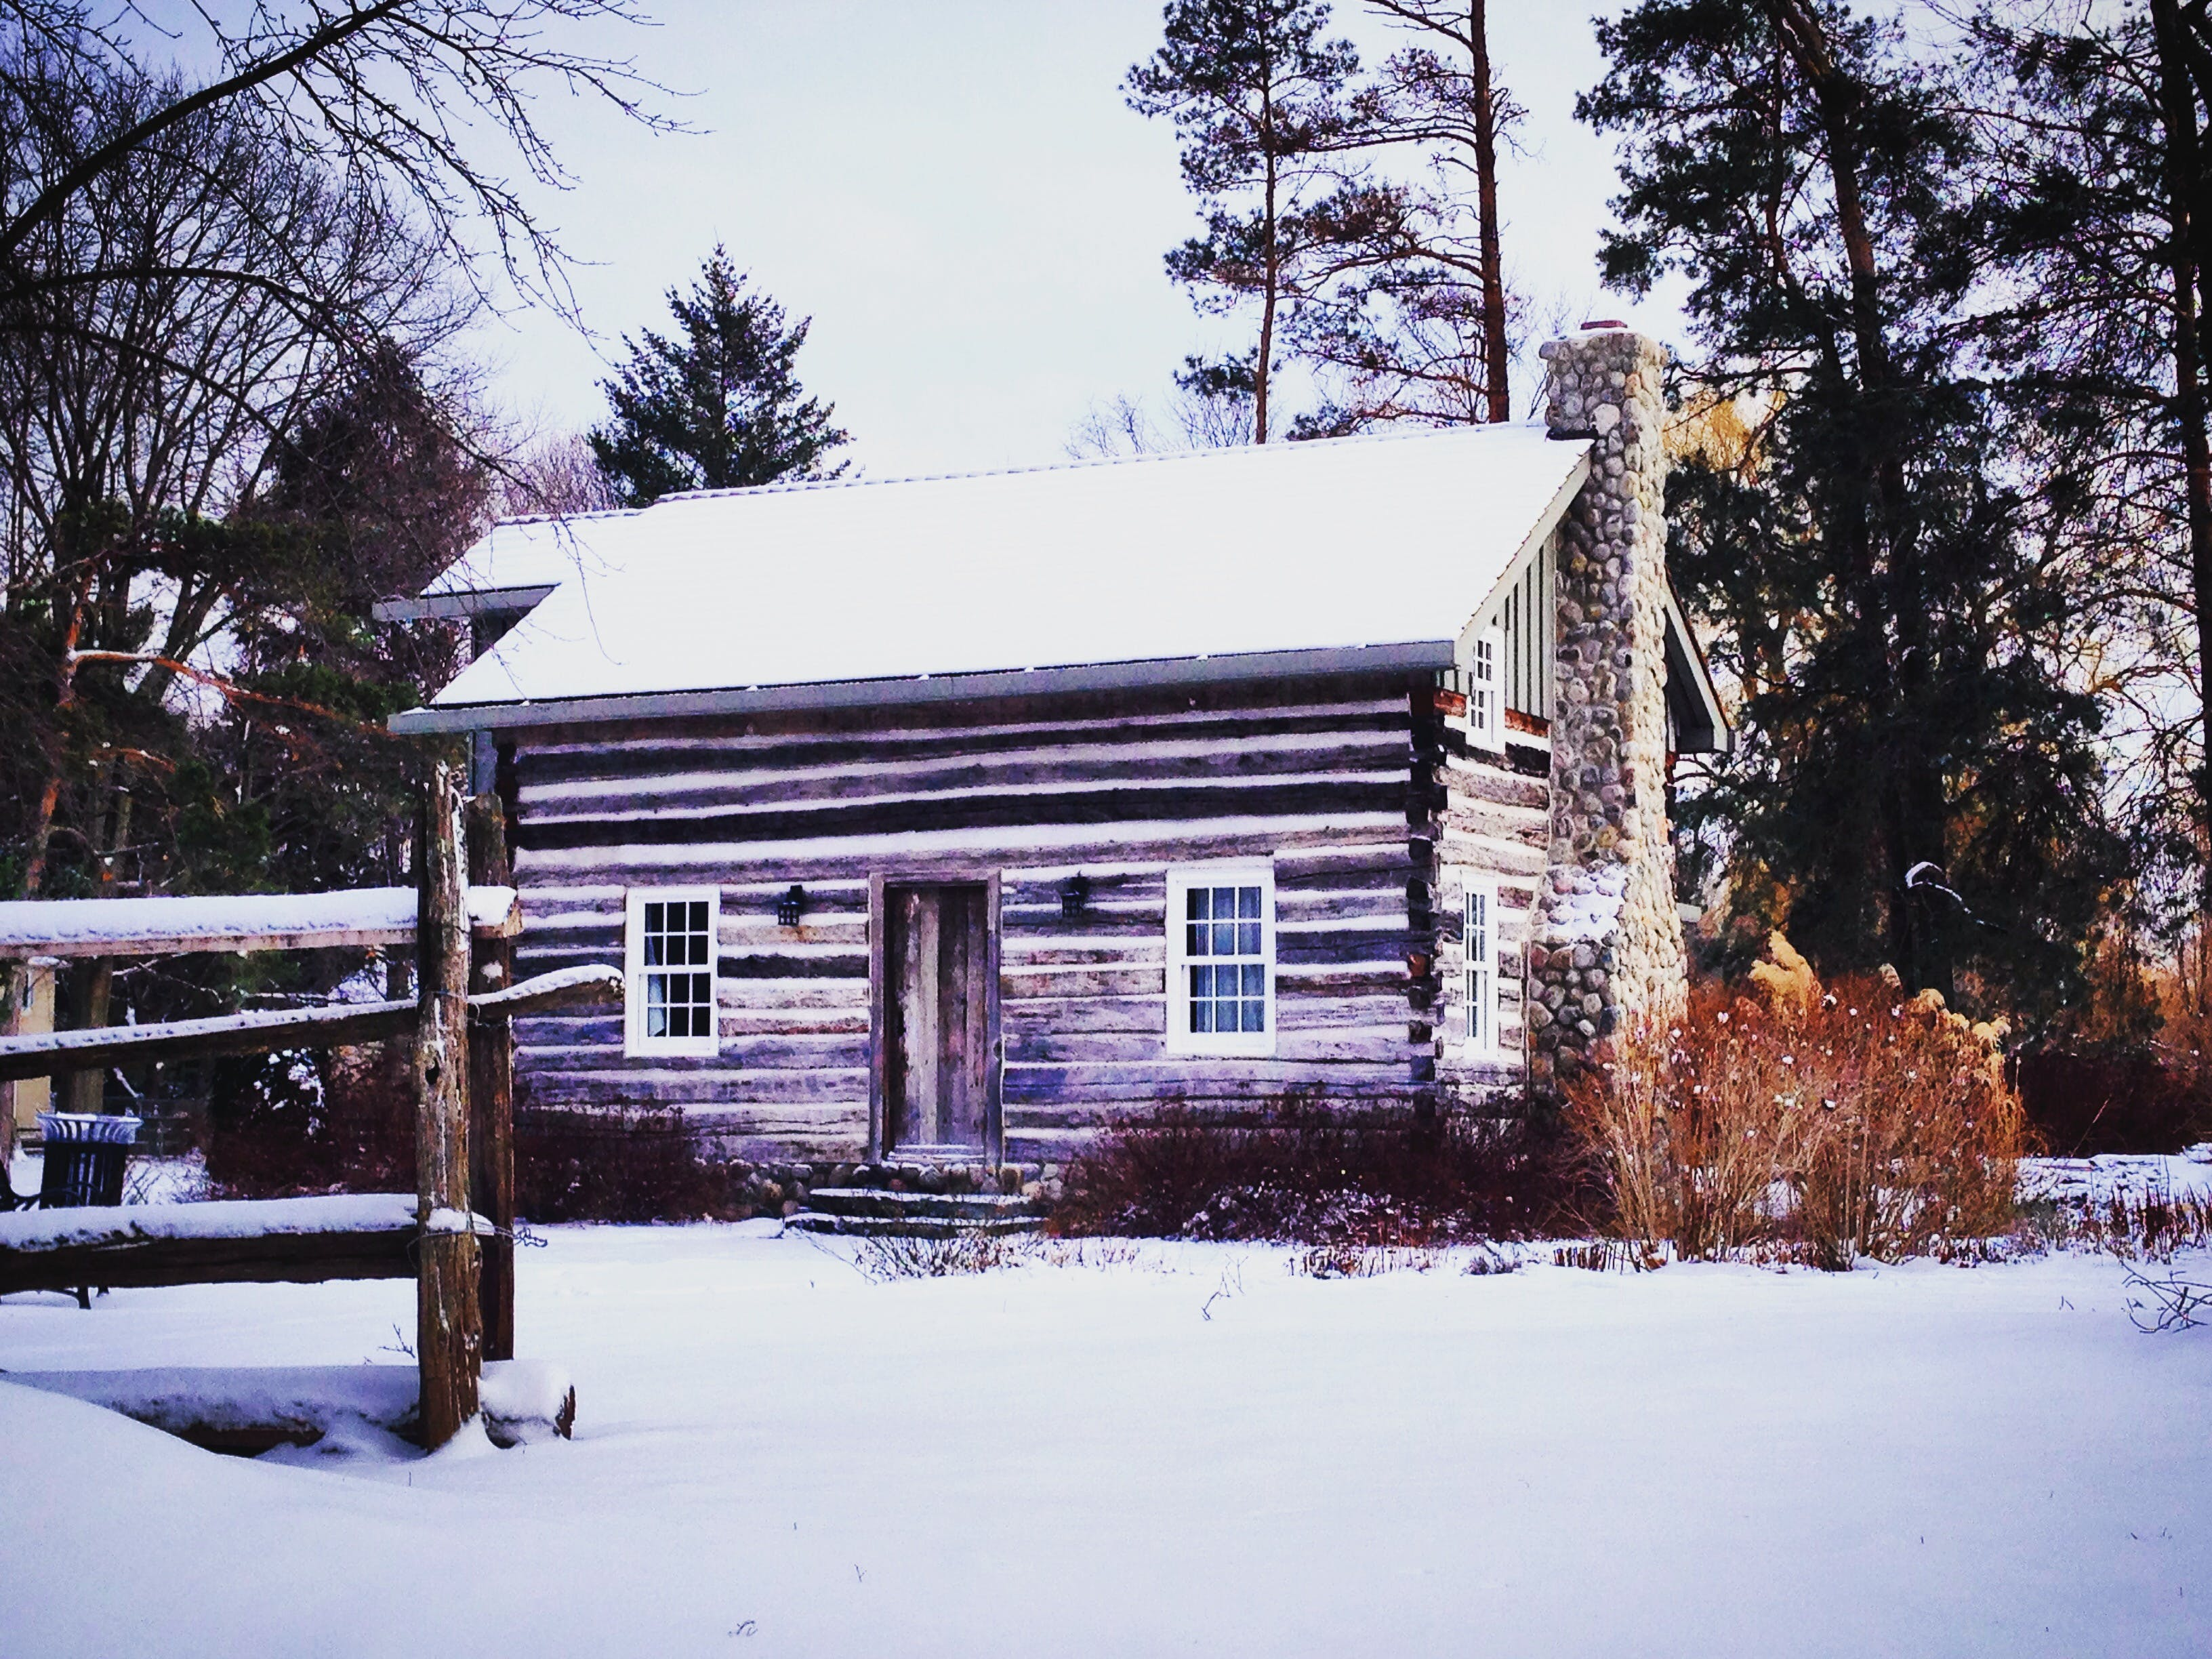 Brown Shack Covered With Snow